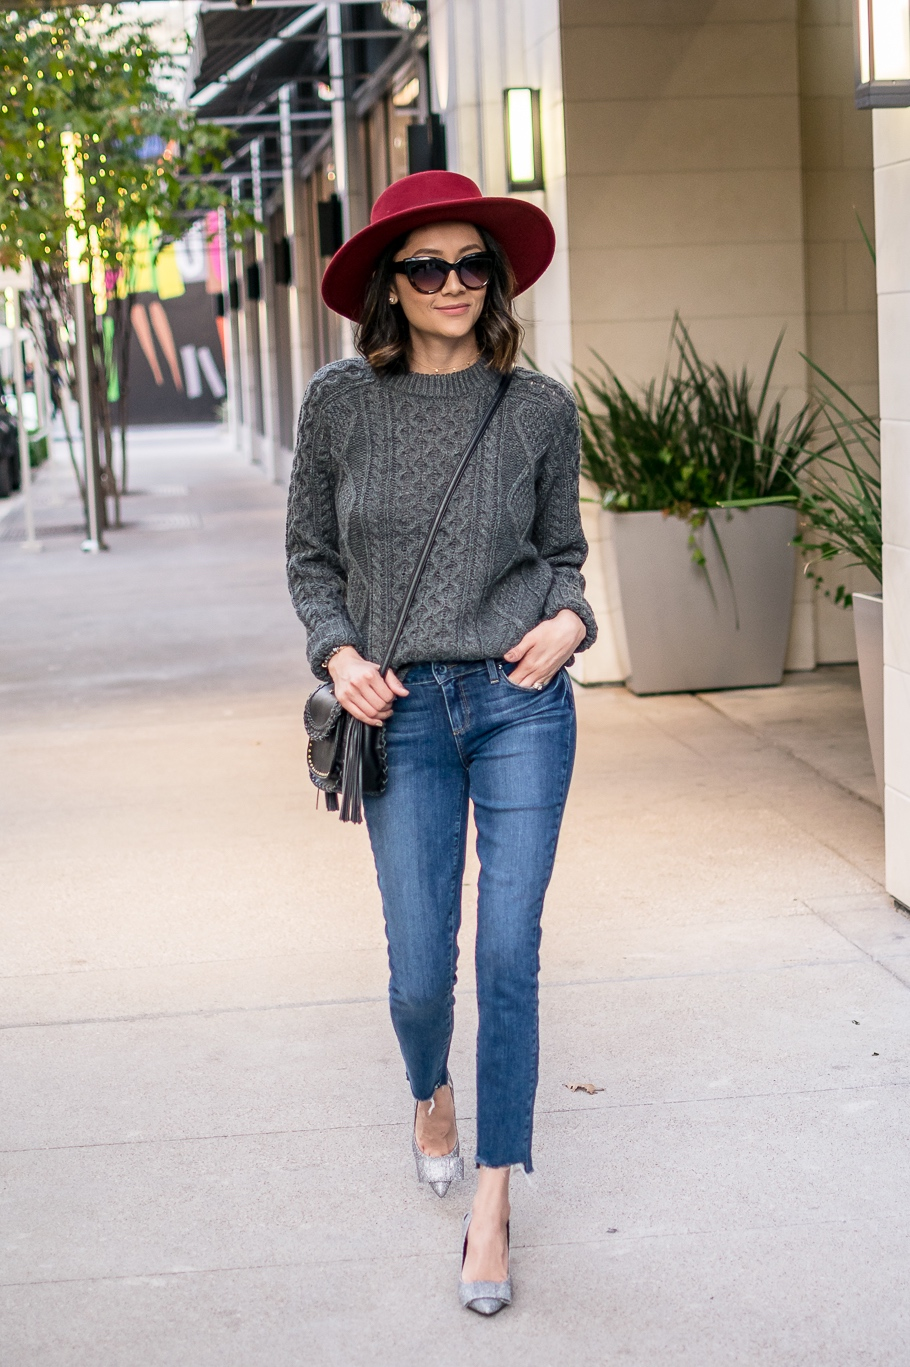 Lilly Beltran of style blog Daily Craving wearing a casual chic Thanksgiving look with a grey cable knit sweater and red hat